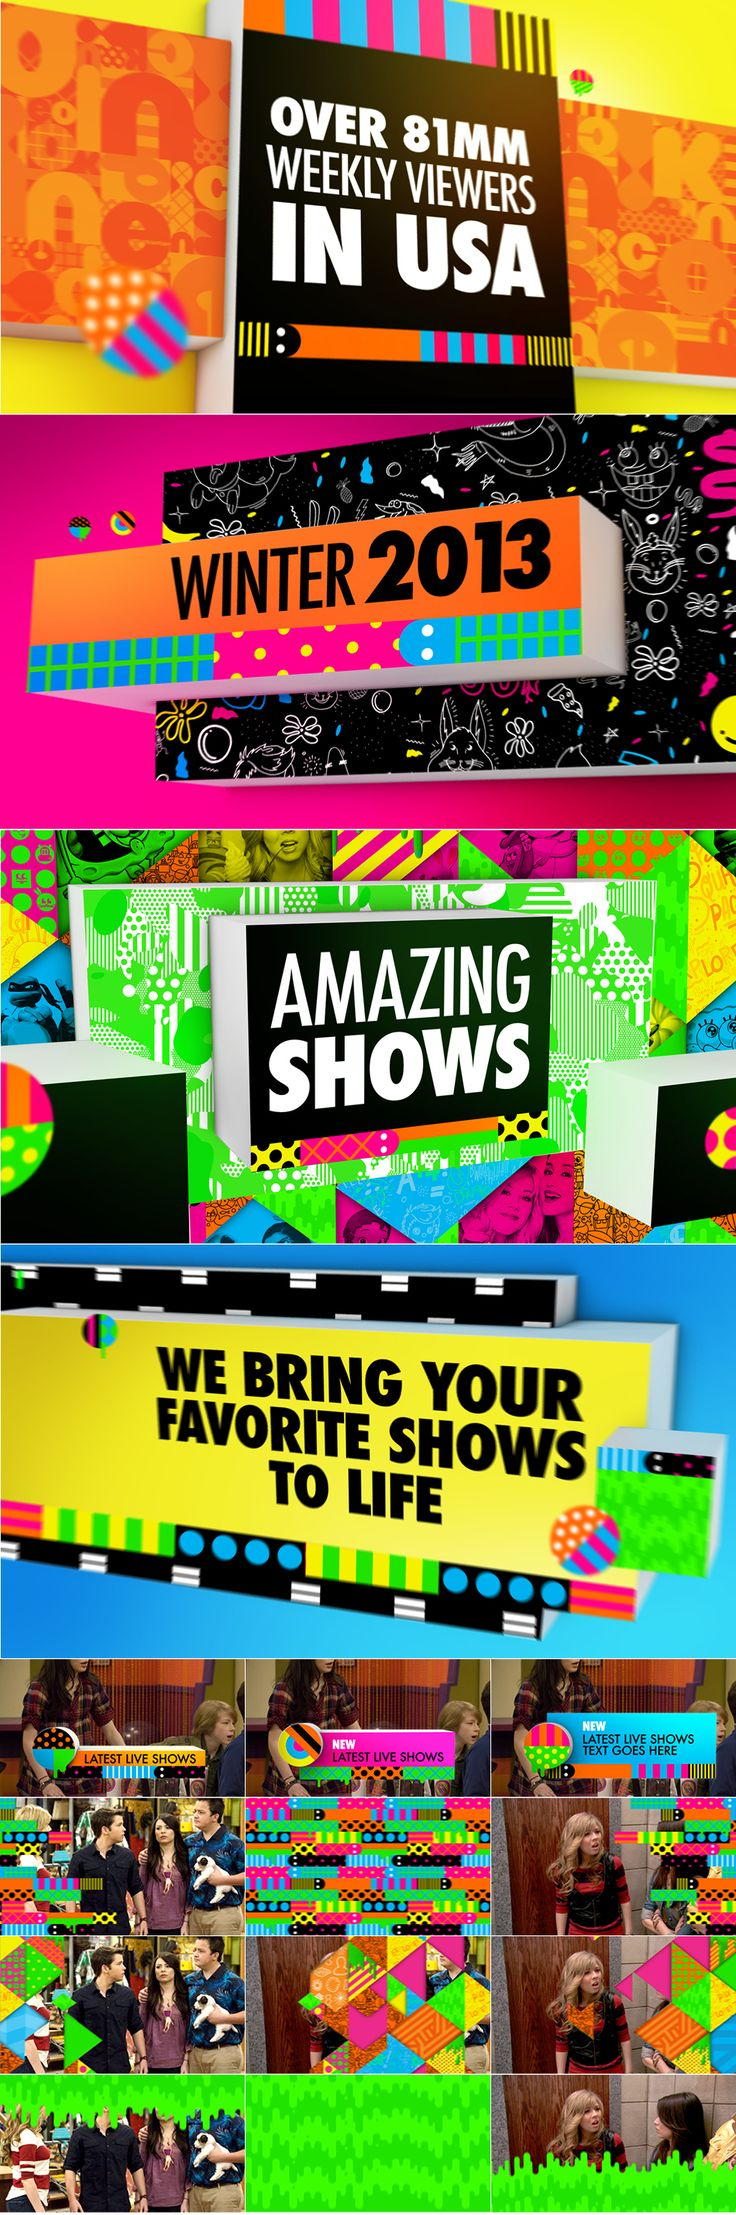 Style frames - motion graphic design - nickelodeon graphics and lower thirds